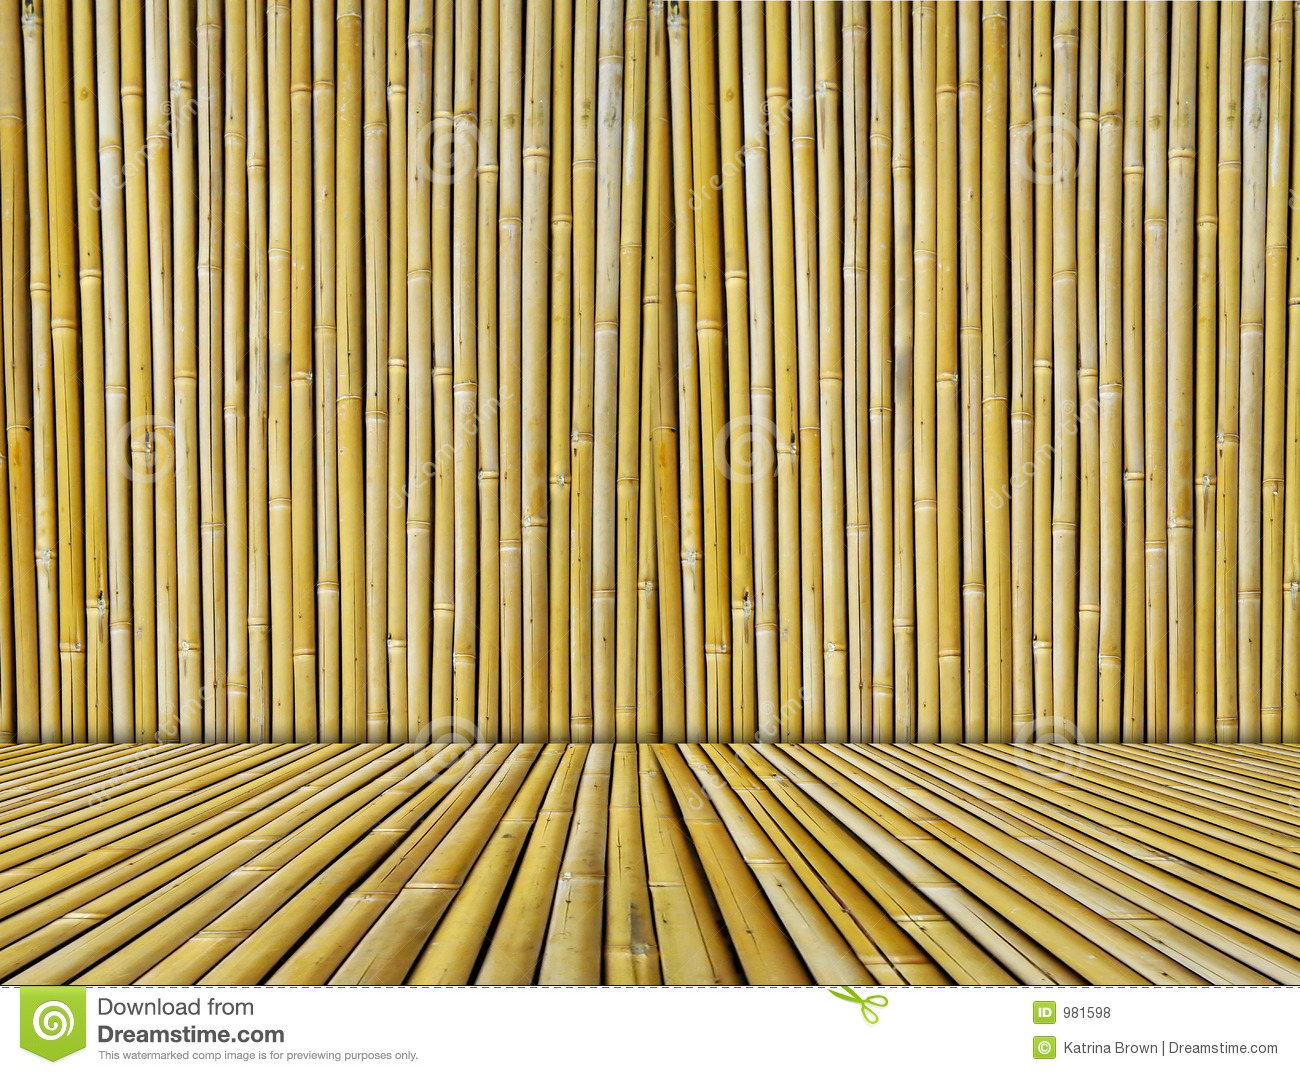 Bamboo Textured Background Royalty Free Stock Photos - Image: 981598